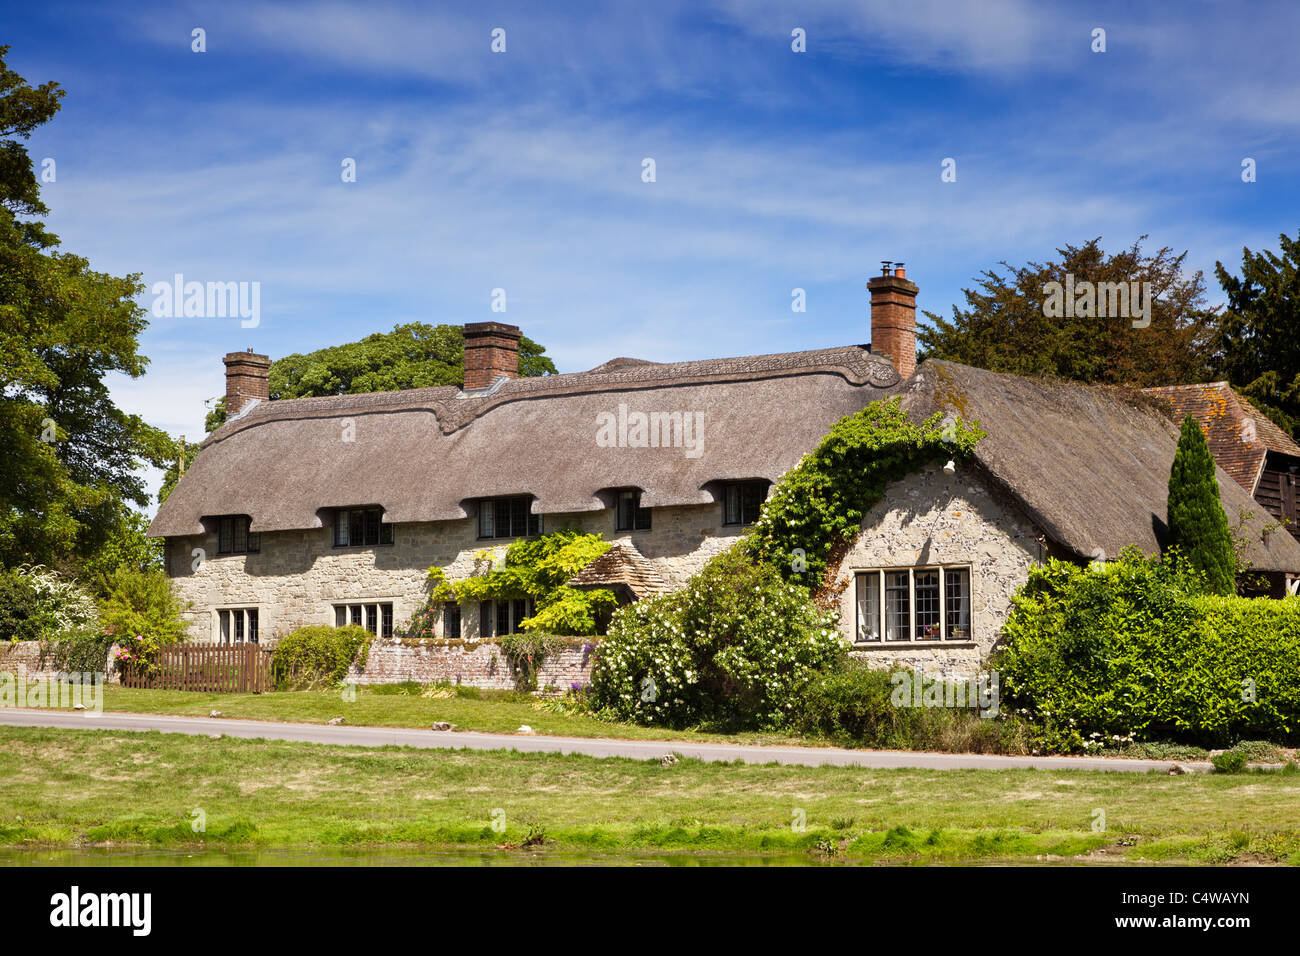 Beautiful old detached house thatched country cottage in the village of Ashmore, Dorset, England, UK in summer - Stock Image